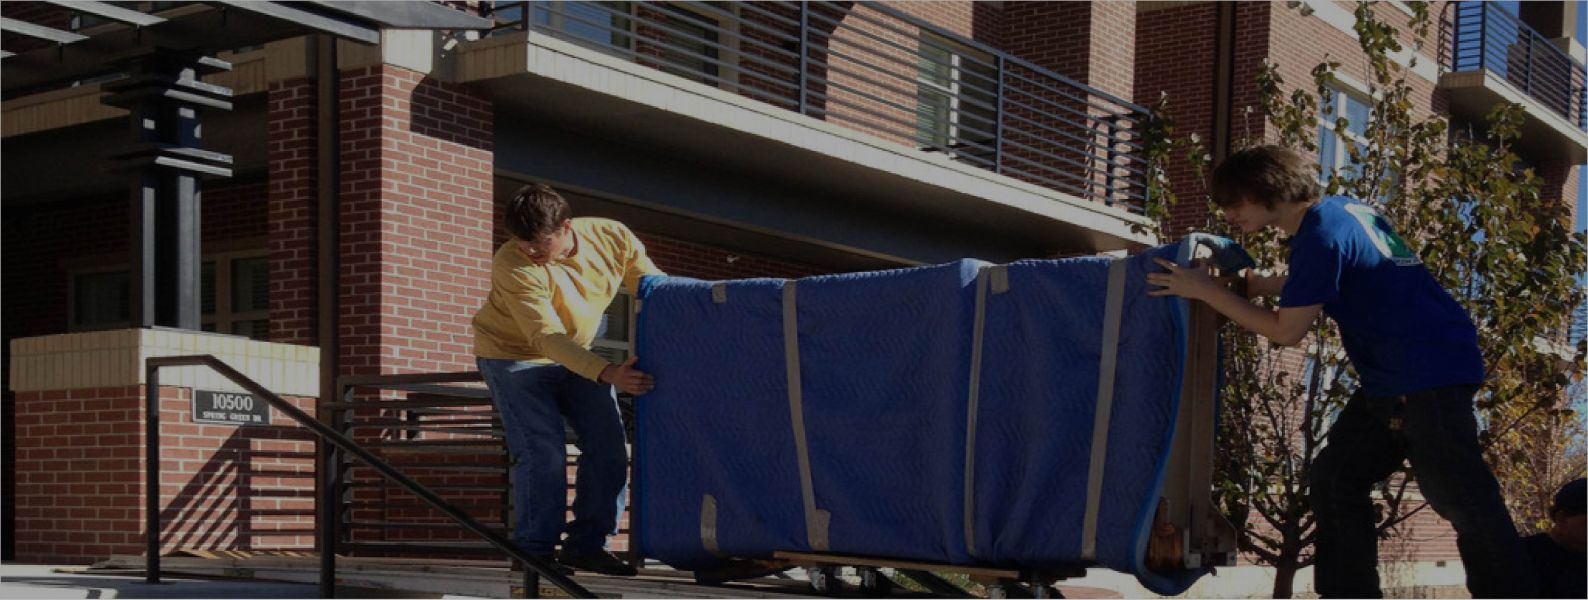 West Metro Relocation – Denver's Moving Company